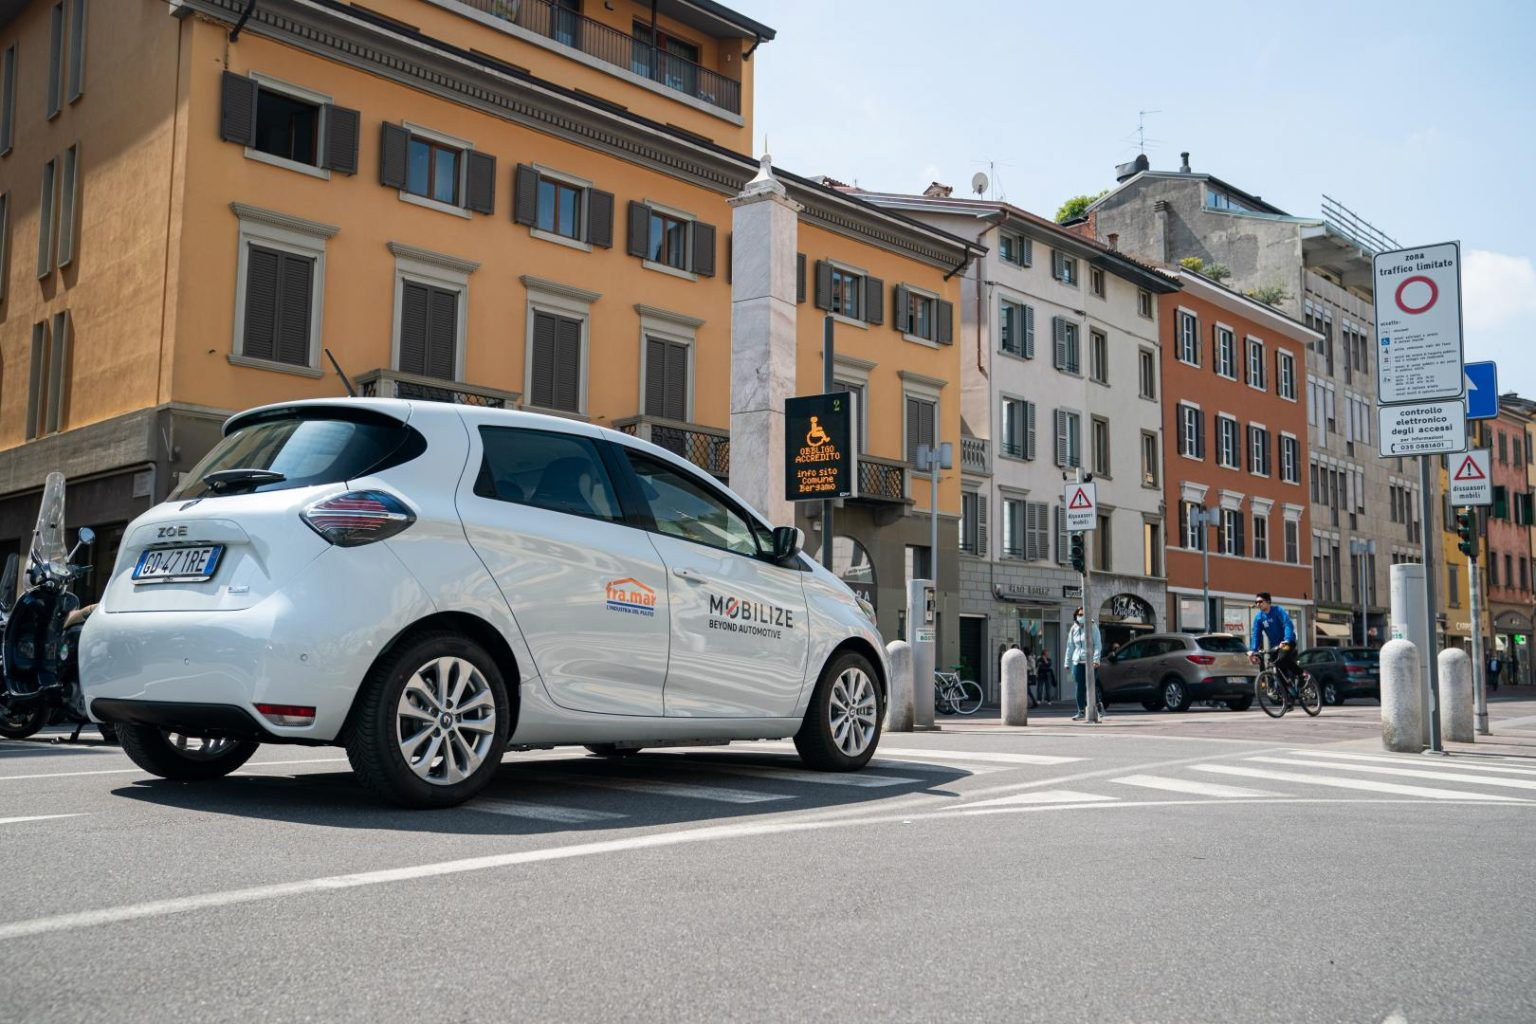 Mobilize renault zoe electric